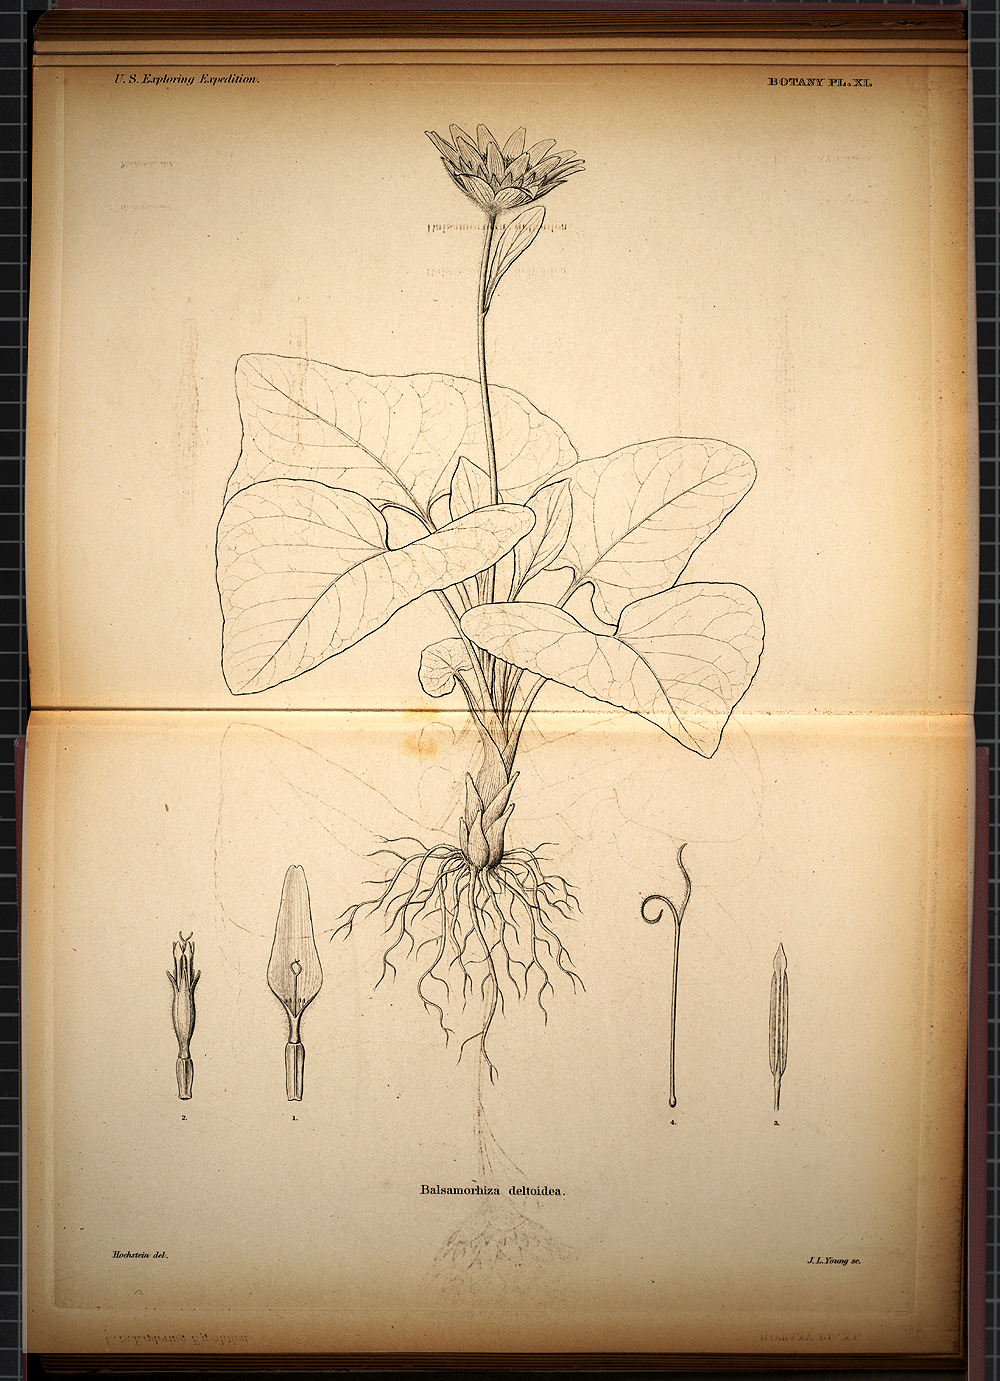 Botany, Plate XI,  Image number:SIL19-28-045